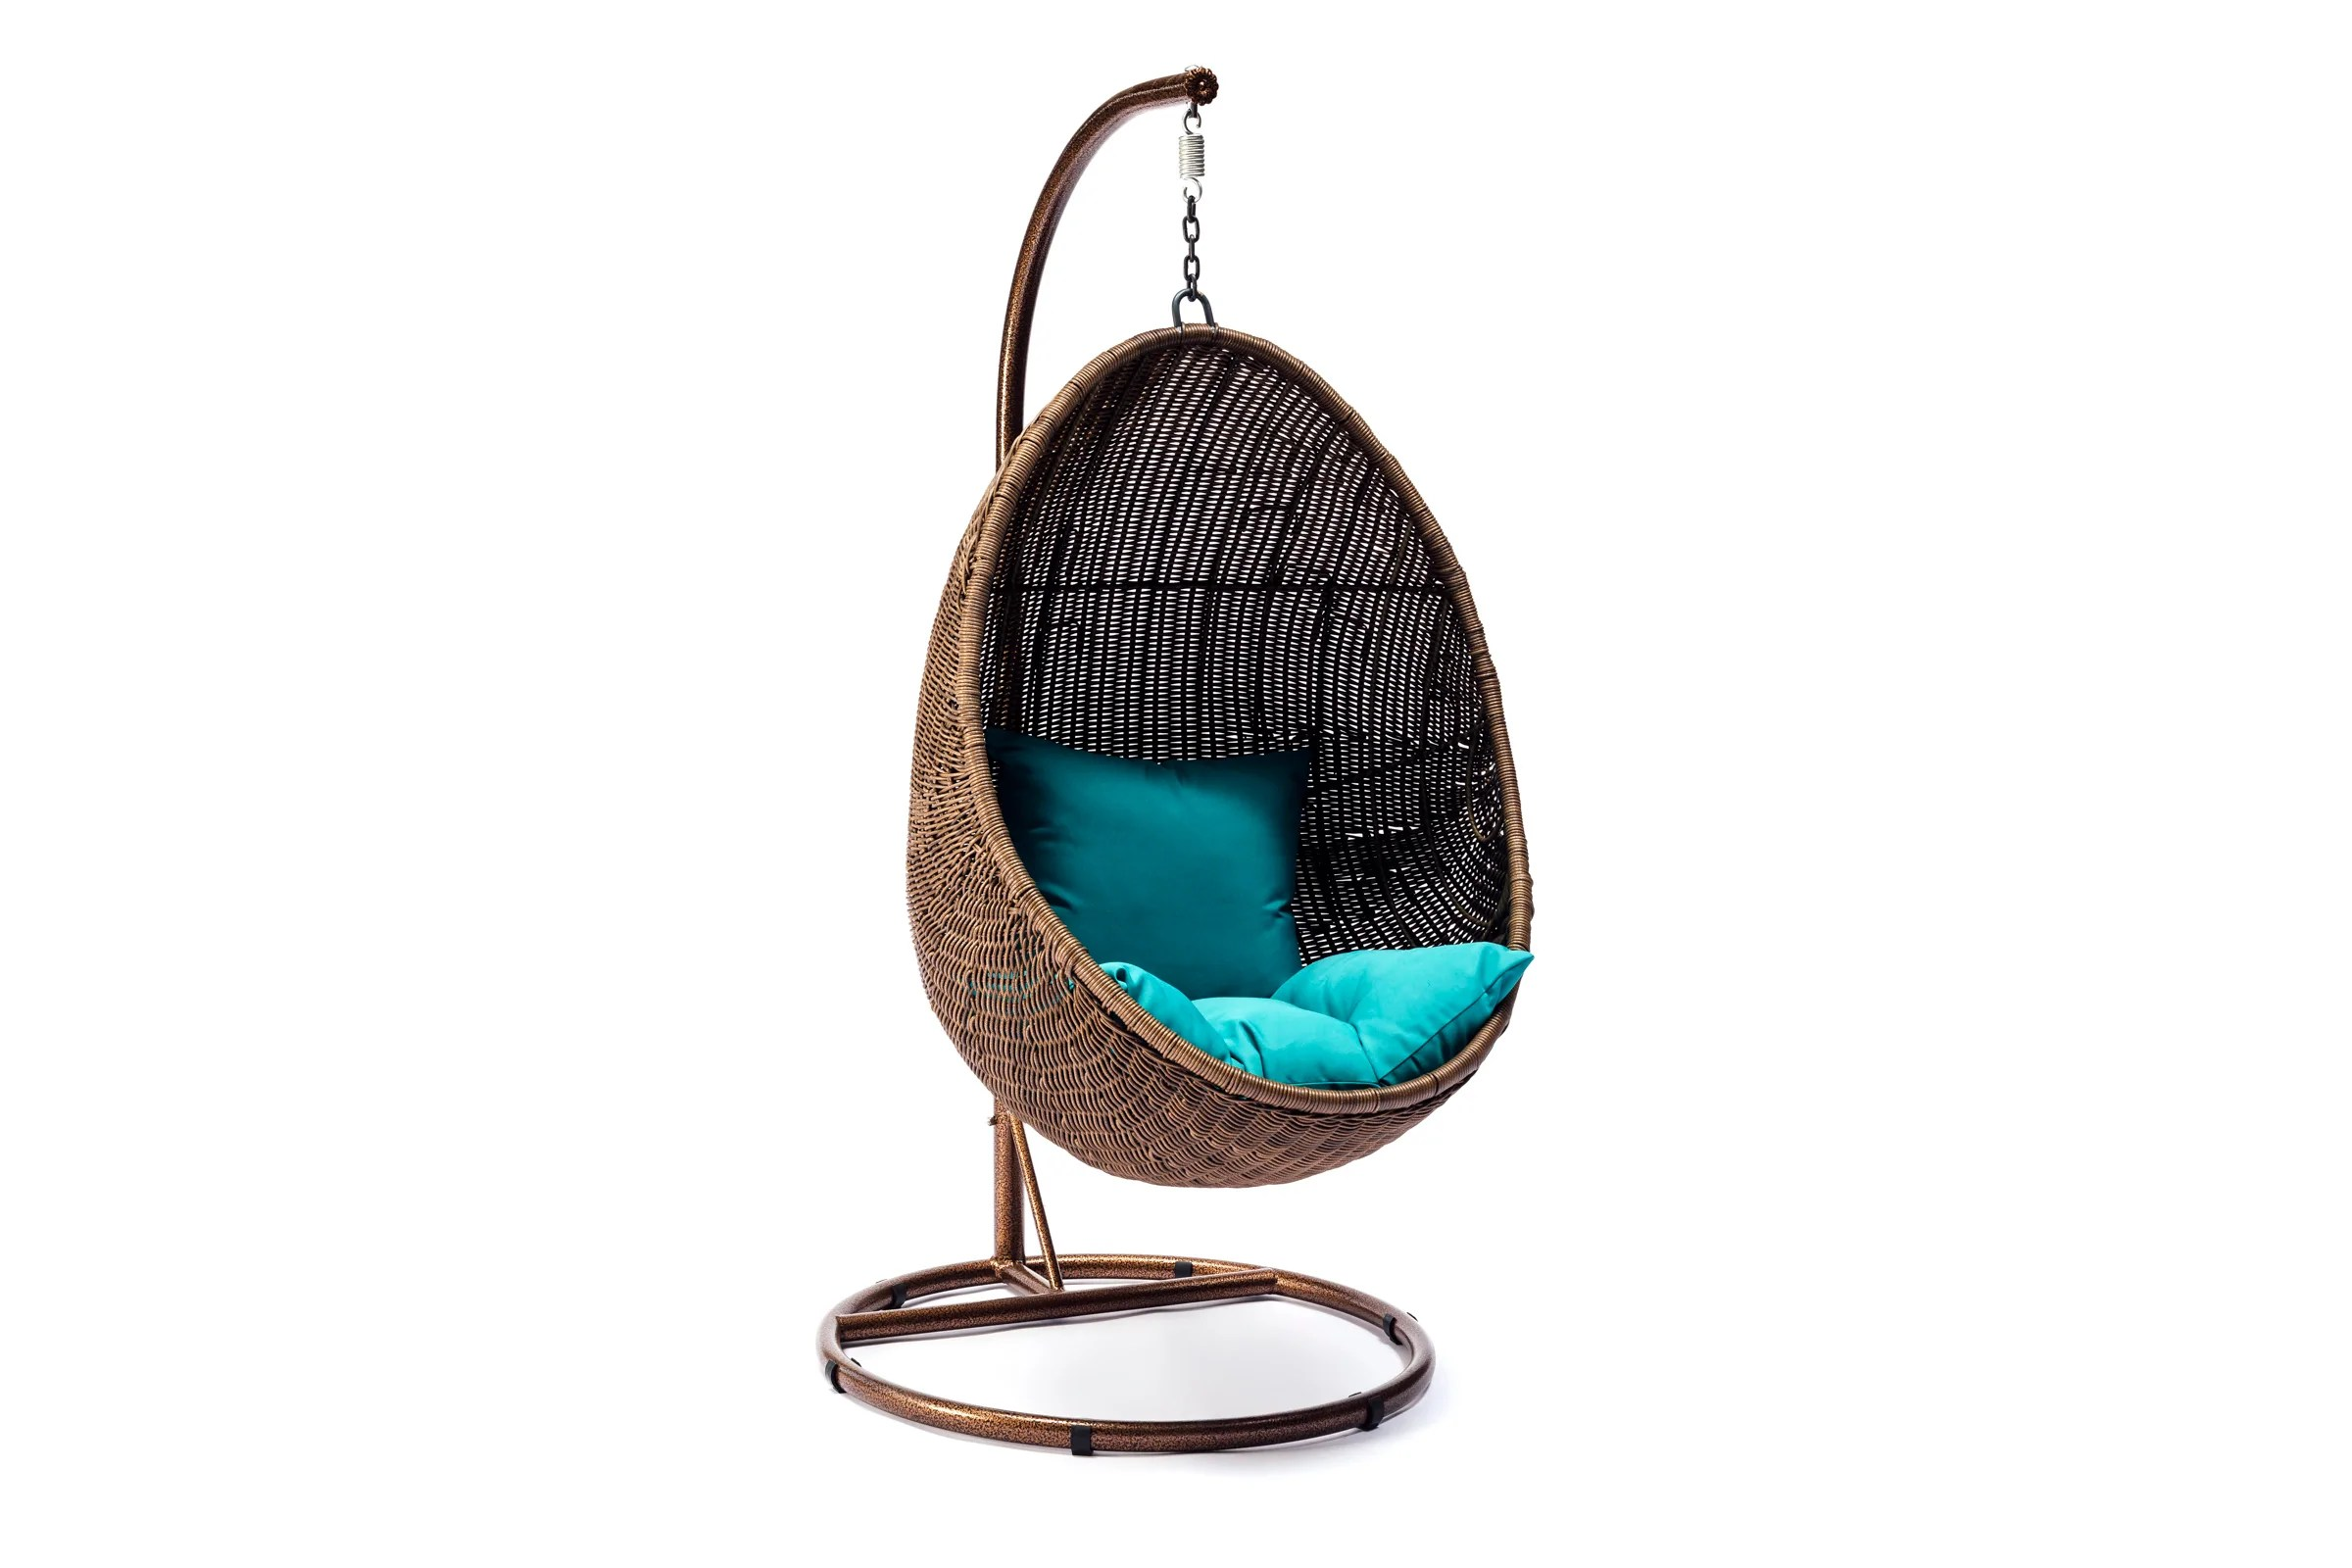 Rattan Swing Chair Egg Chair Ansan Outdoor Furniture Wicker Egg Swing Chair